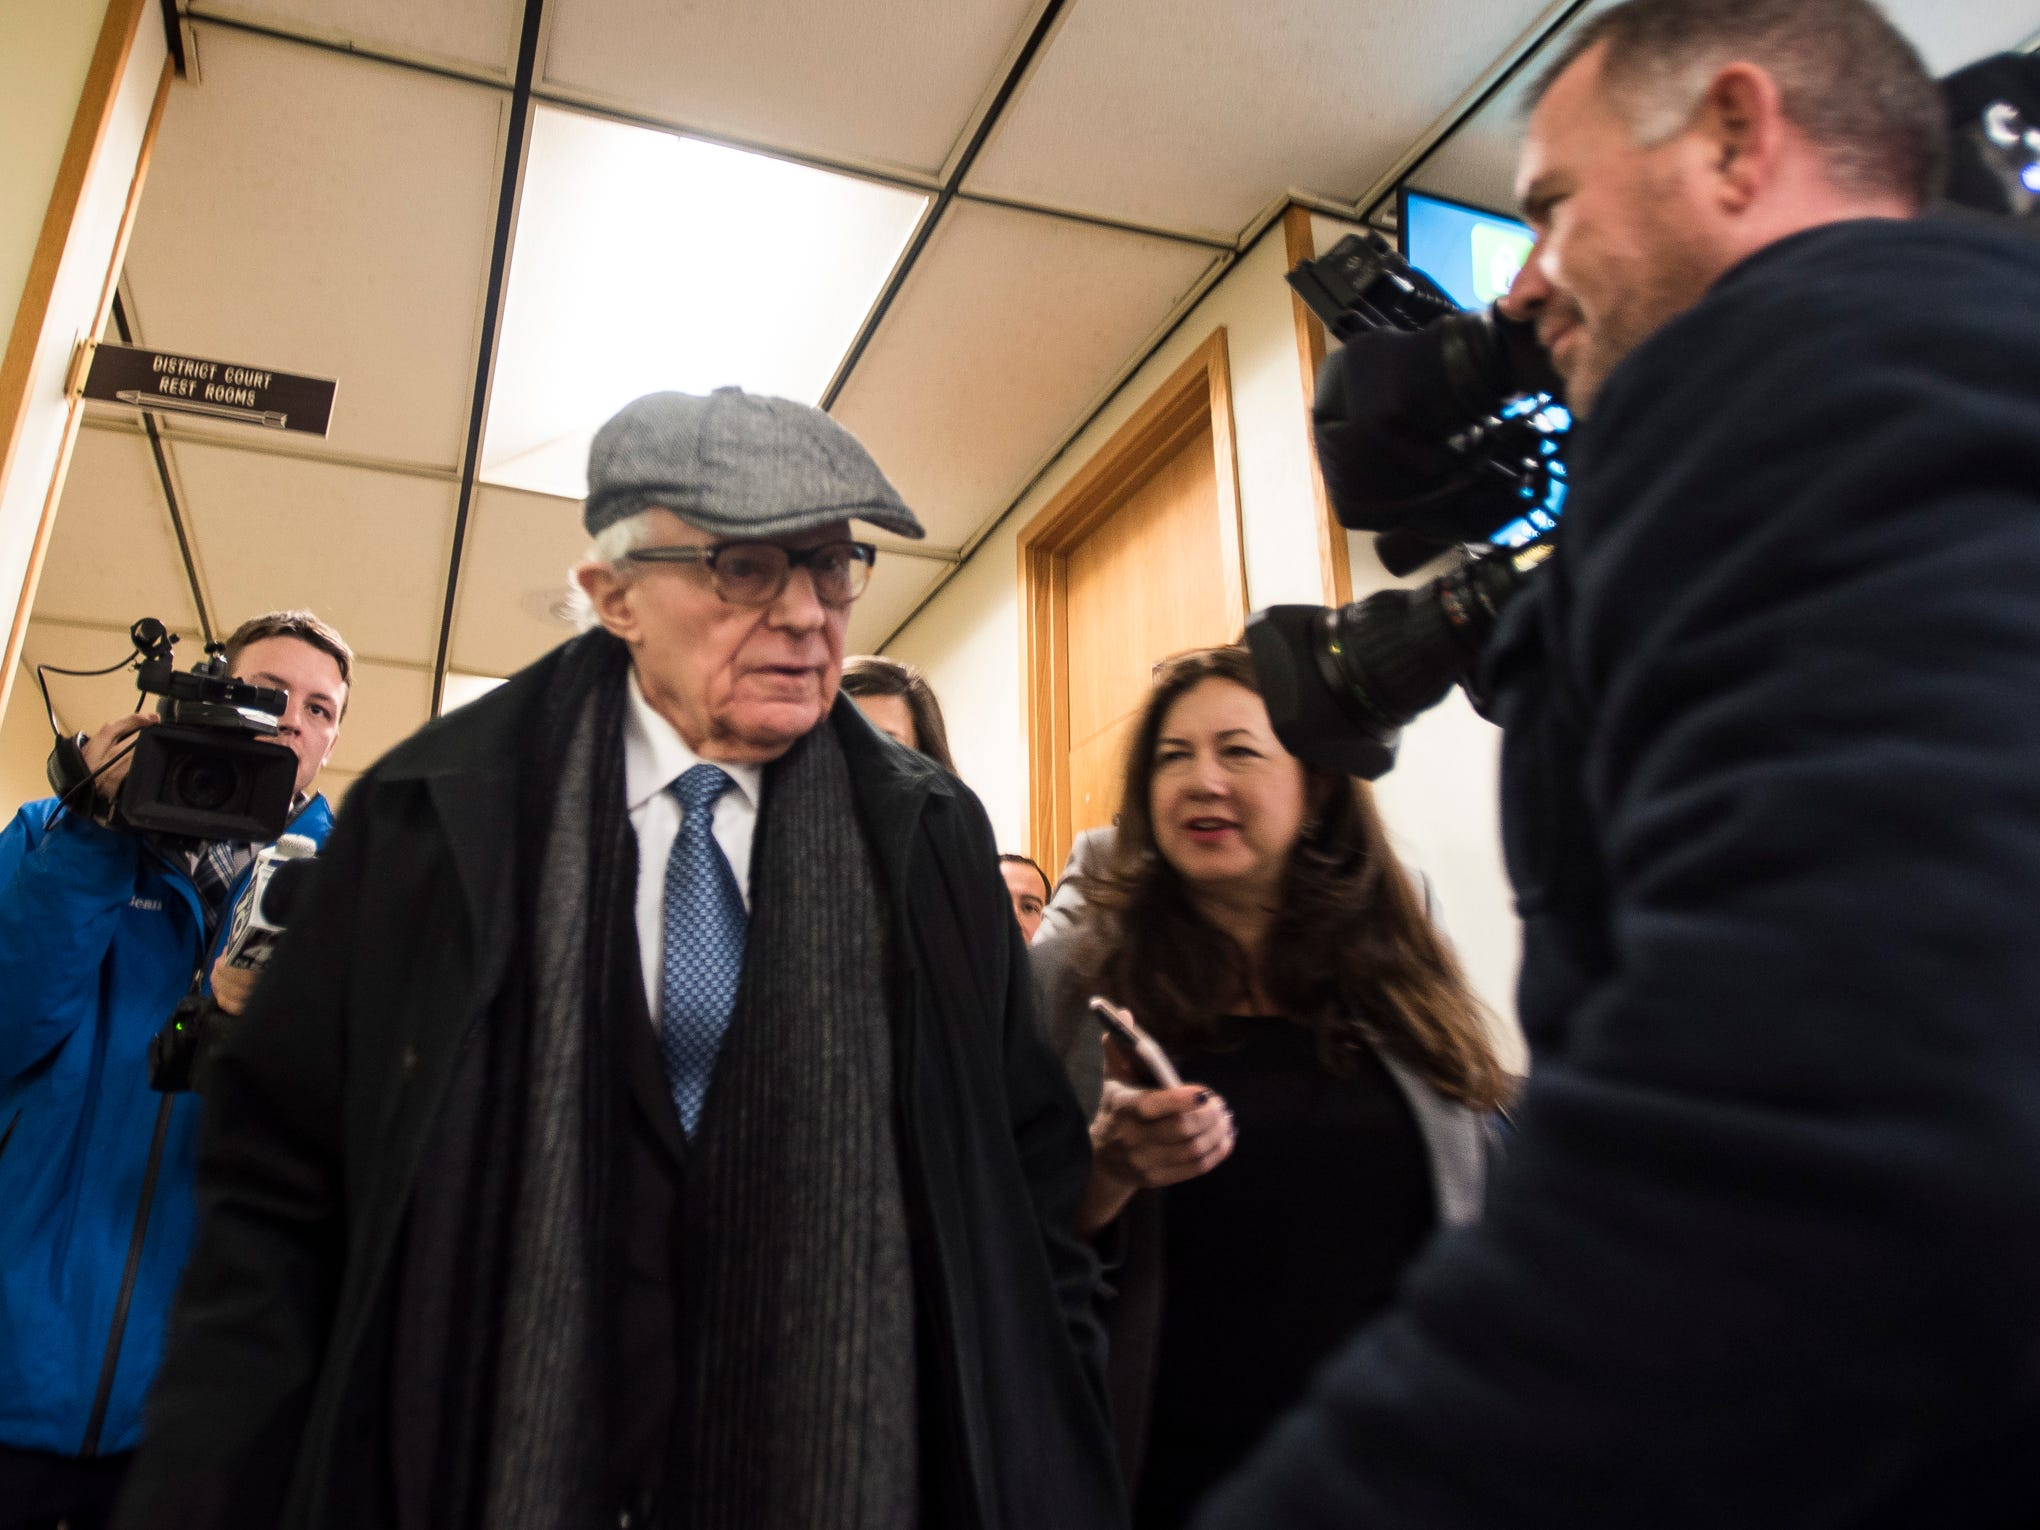 Journalists fire questions at attorney Mayer Morganroth, Tuesday, Feb. 5, 2019, after the the first day of the preliminary hearing for former MSU president Lou Anna Simon in Charlotte, Michigan.  [MATTHEW DAE SMITH/USA Today Network/Lansing State Journal]